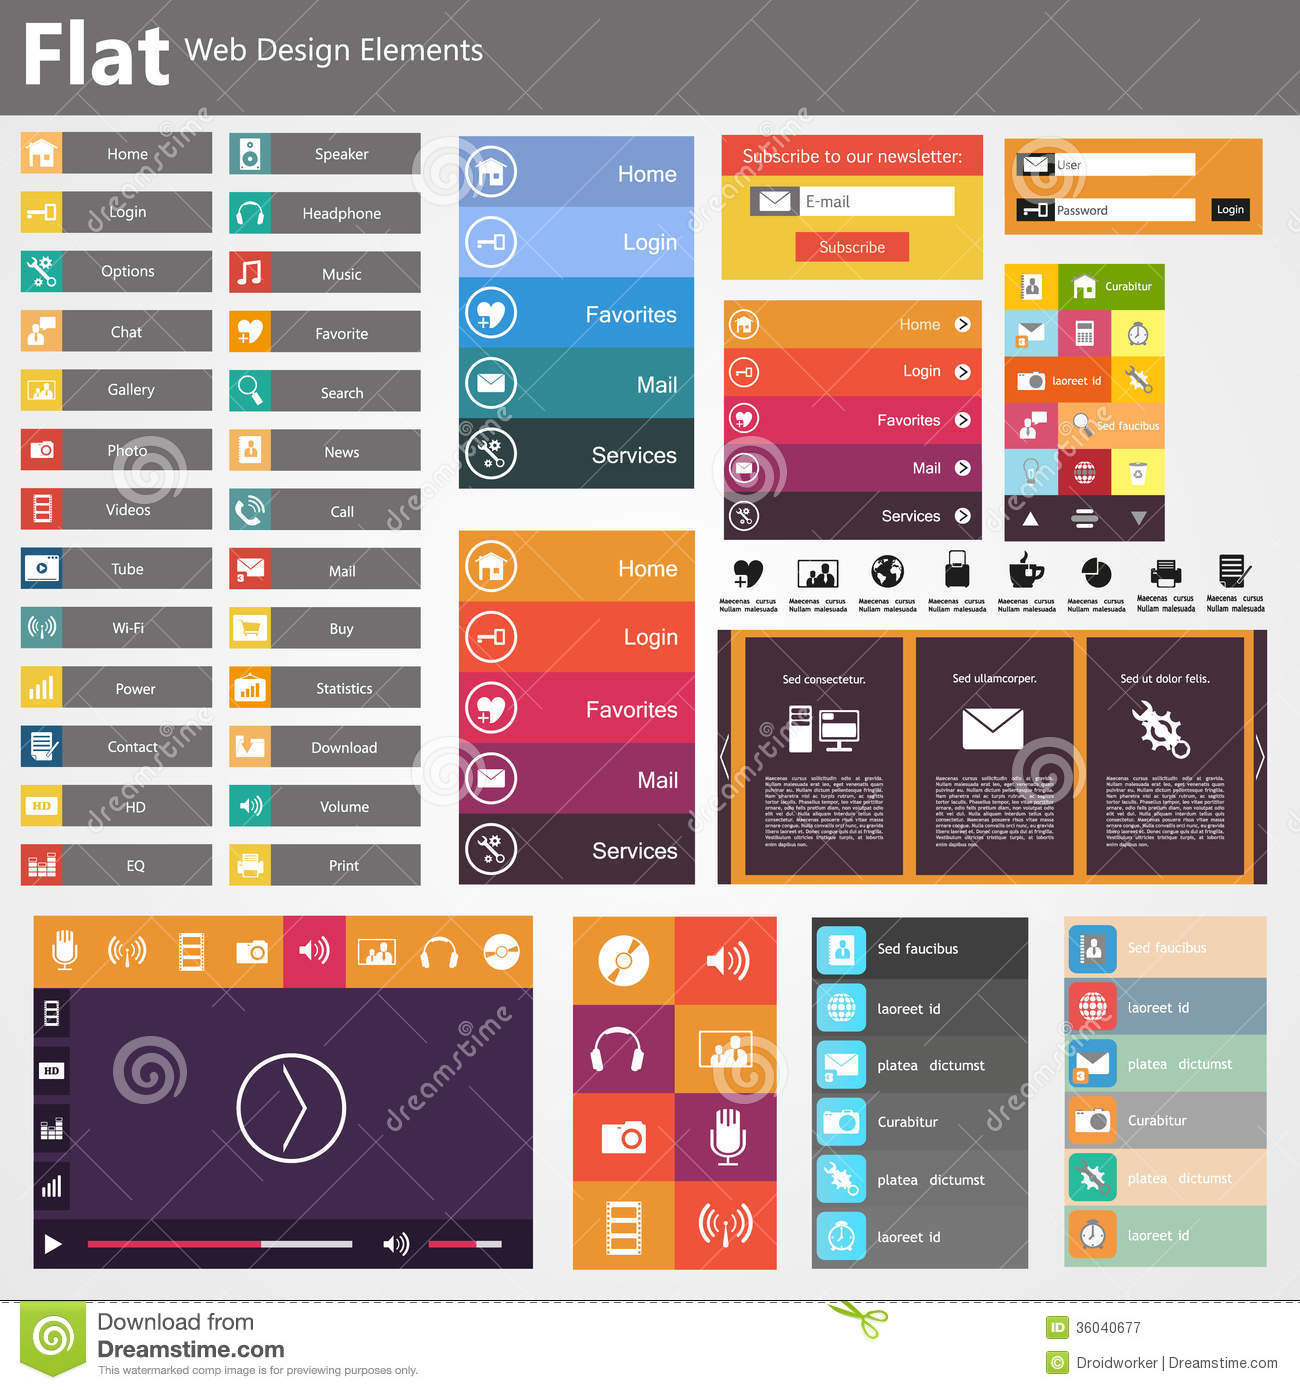 Flat web design elements buttons icons templates for for Create a blueprint online free